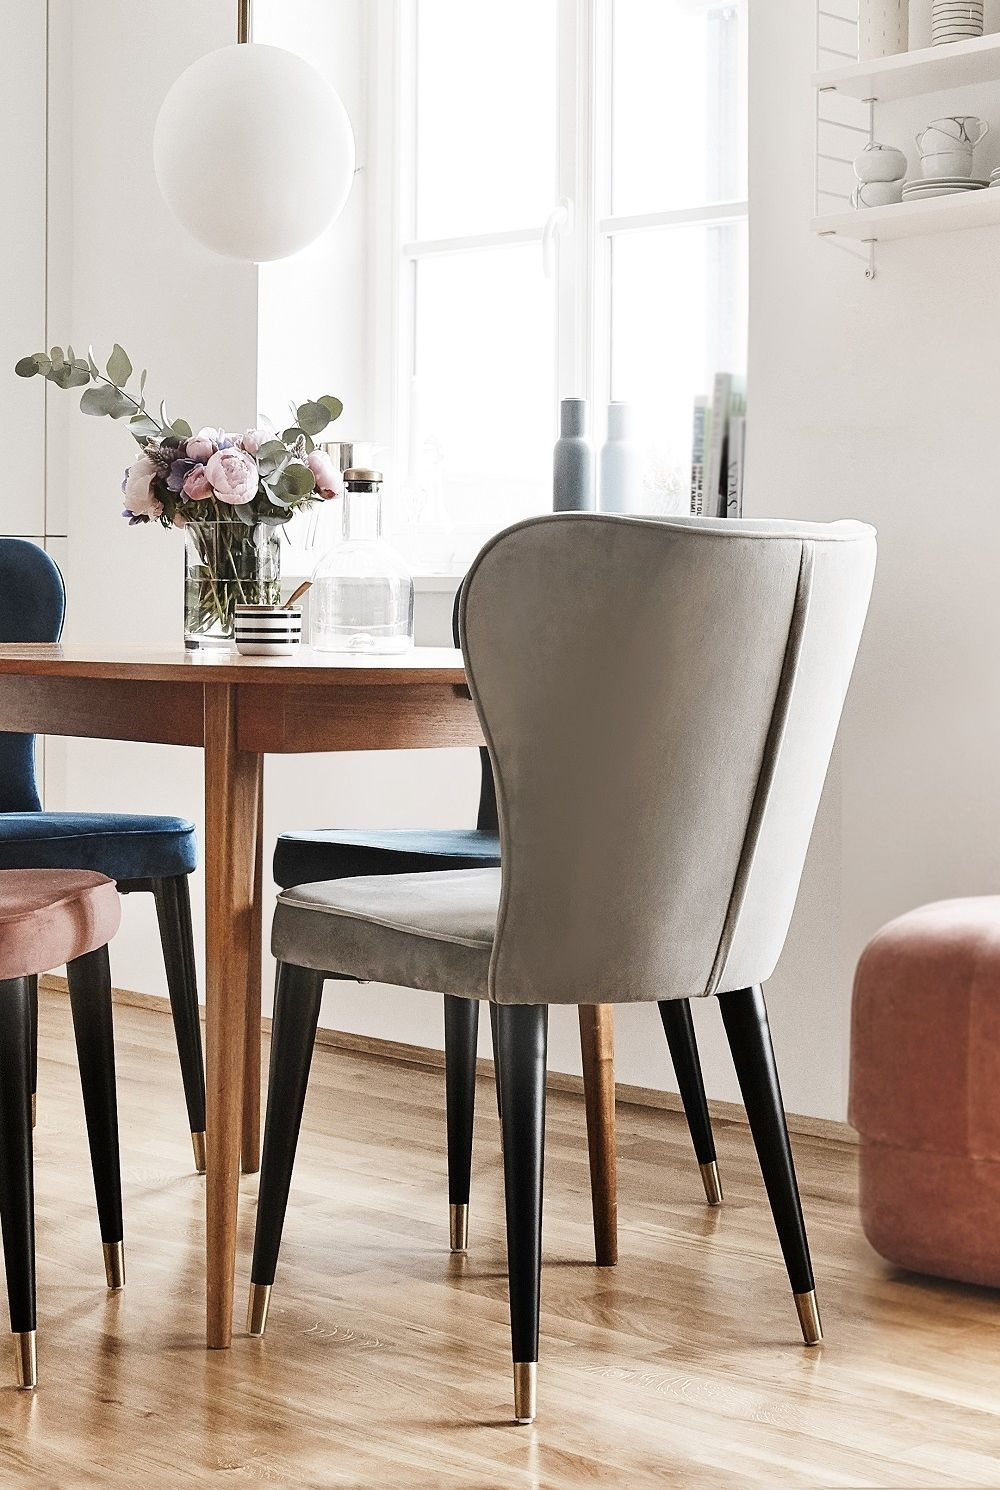 Esszimmer Leuchte Möbel Aus Hellem Holz Samt Polsterstuhl Cleo Home Decor Dining Chairs Chair Home Decor